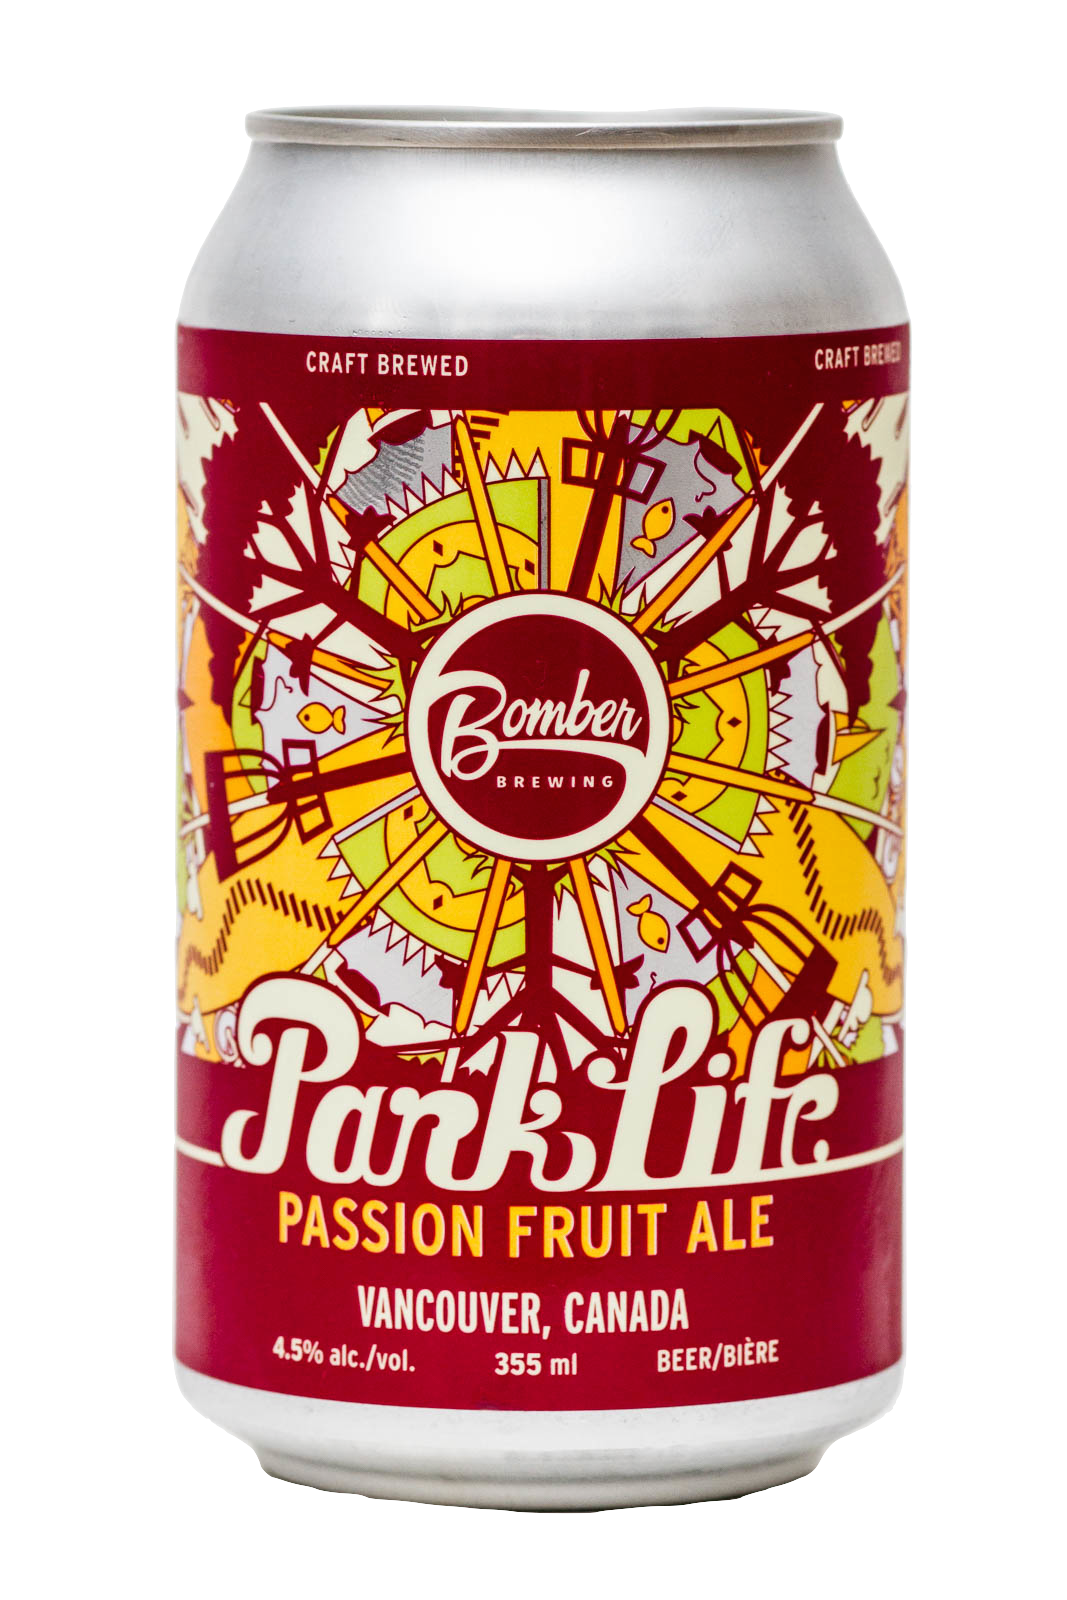 Bomber Brewing, Park Life Passion Fruit Ale